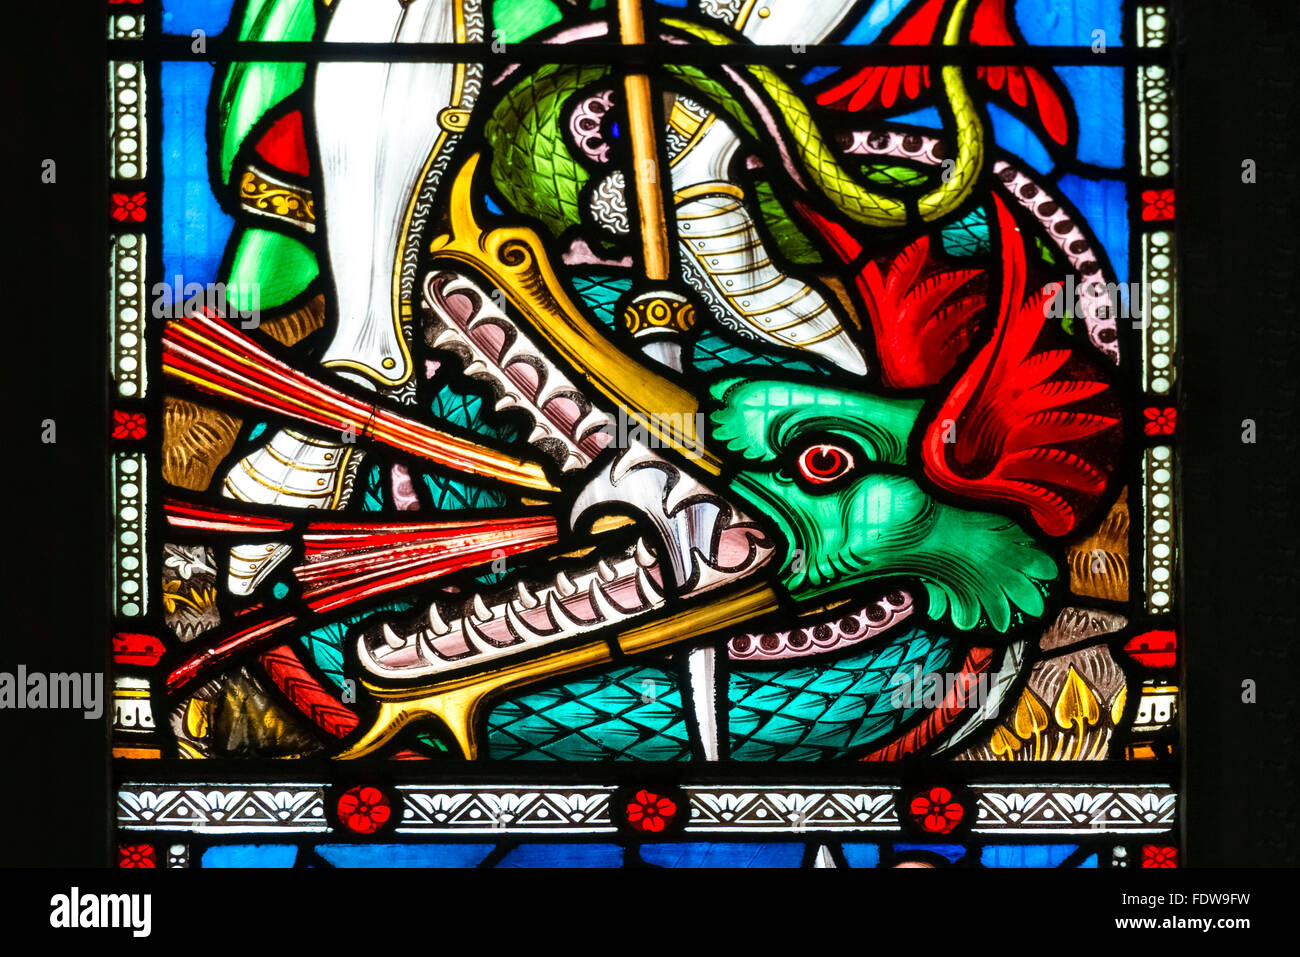 Stained glass window inside of Hereford Cathedral, UK. - Stock Image